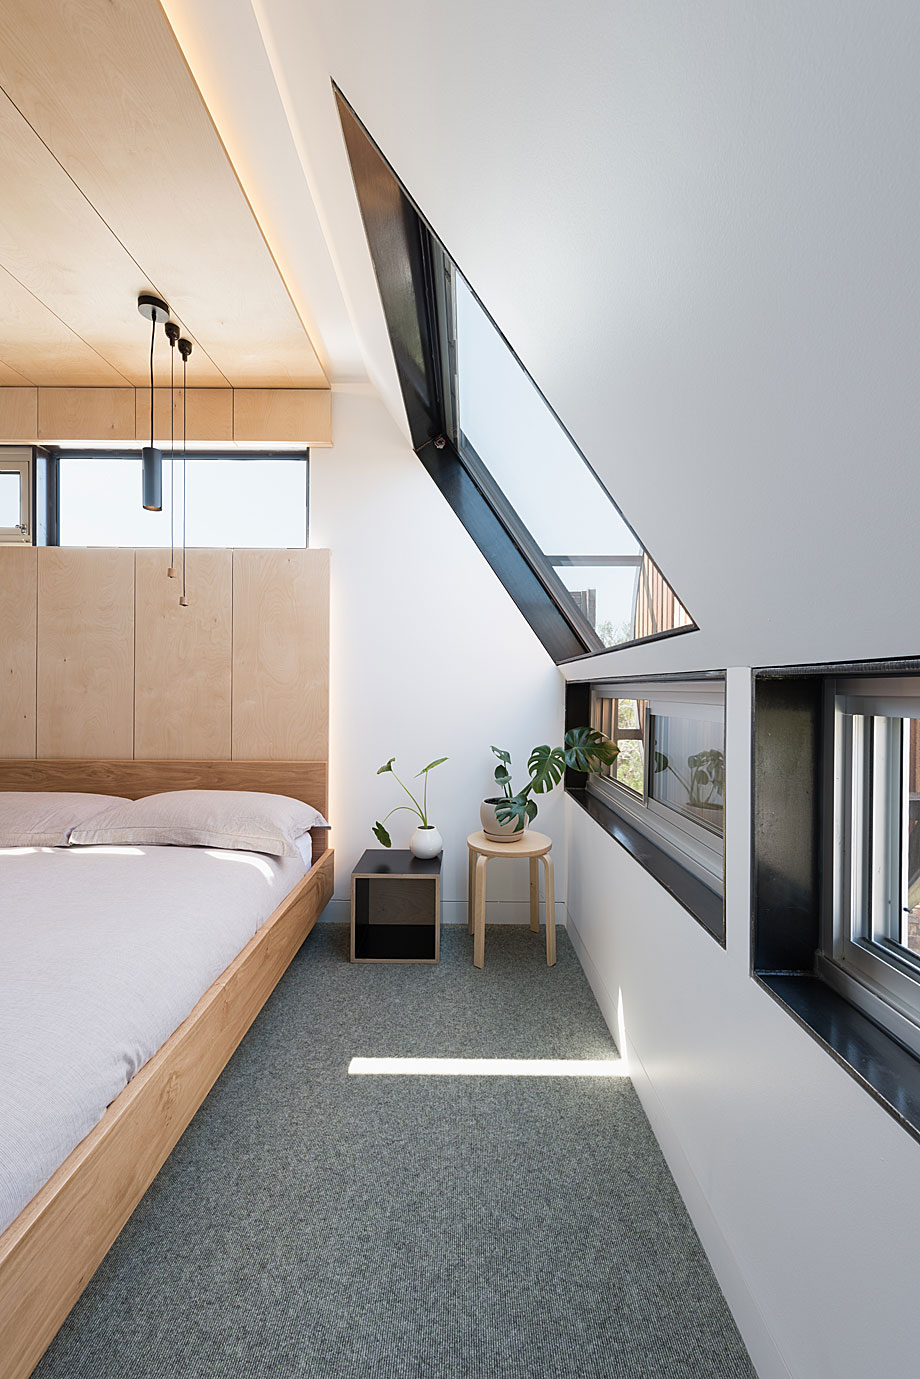 ampliacion-wilson-st-drawing-room-architecture (8)